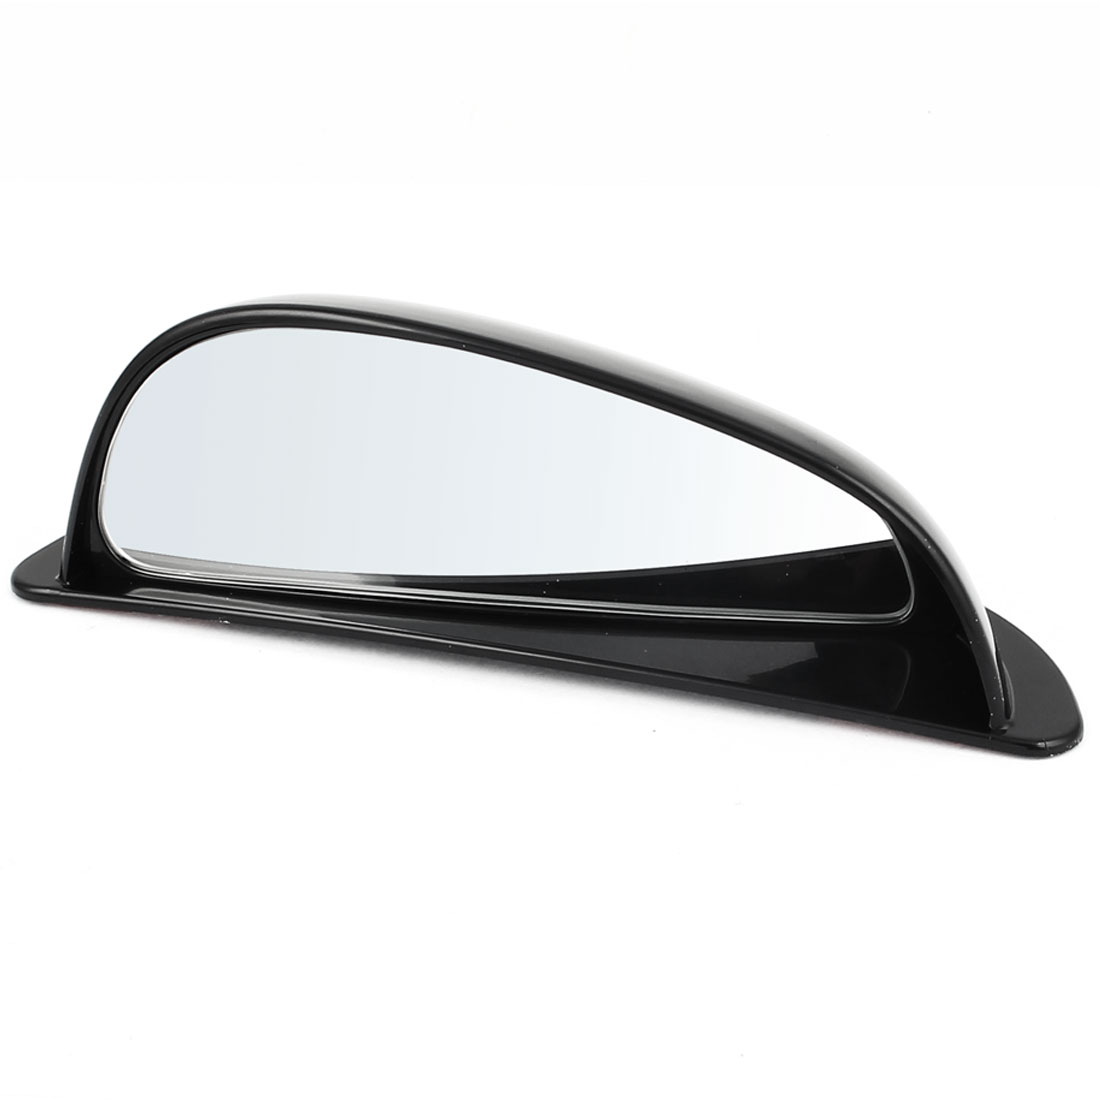 Car Auto Plastic Shell Wide Angle Blind Spot Right Side Rear View Rearview Mirror